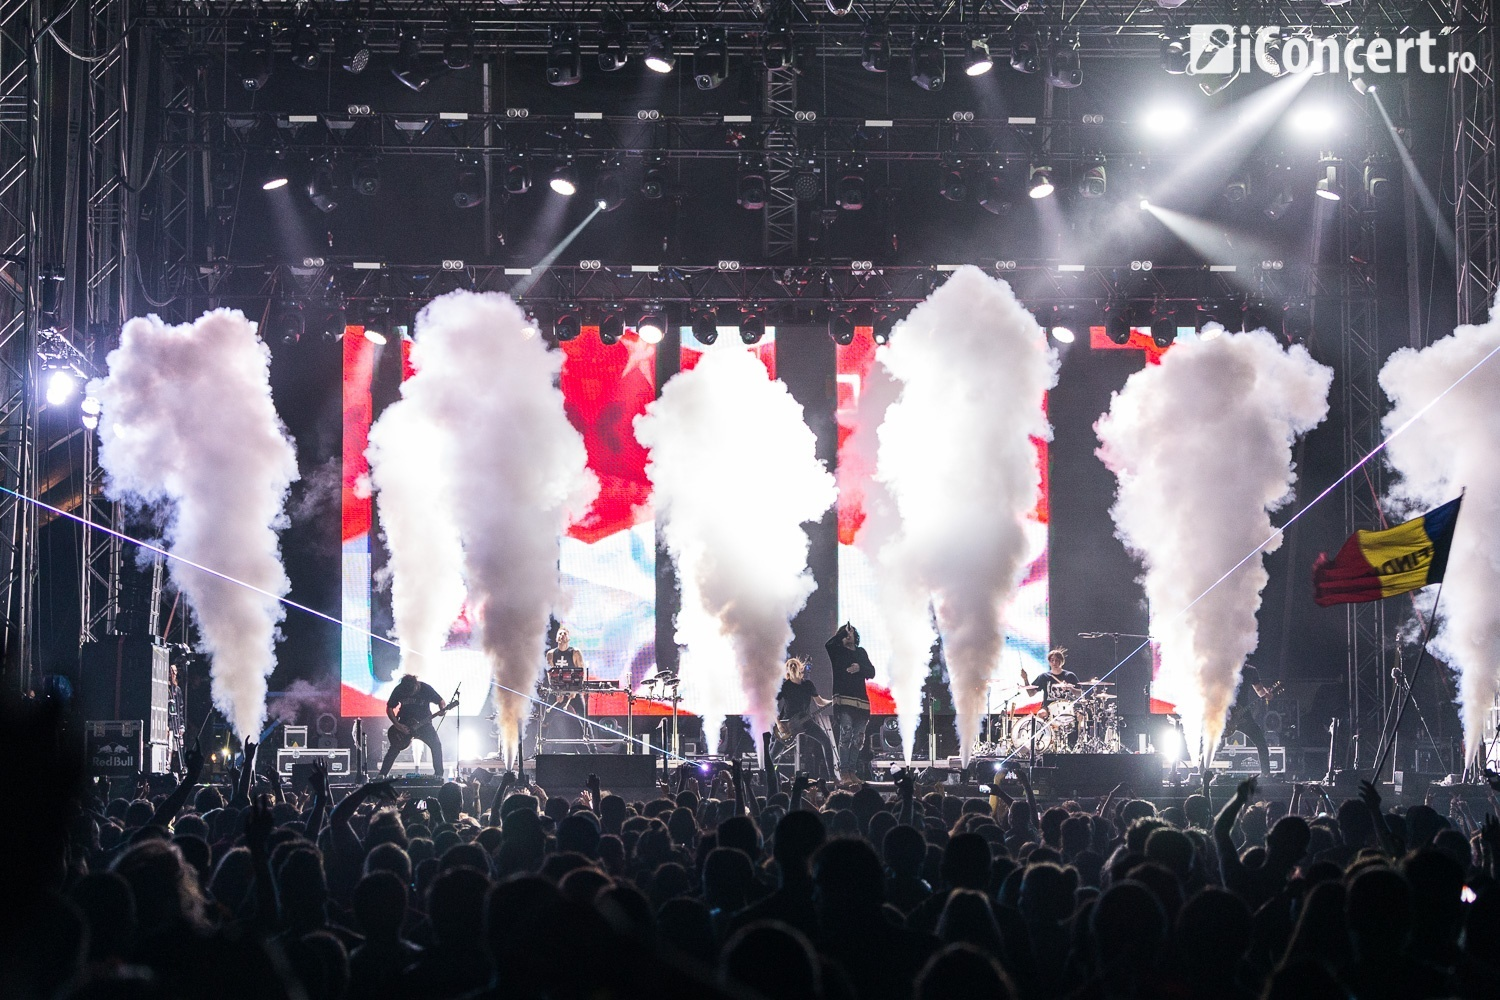 Bring Me The Horizon rocked the Main Stage - Foto: Daniel Robert Dinu / iConcert.ro